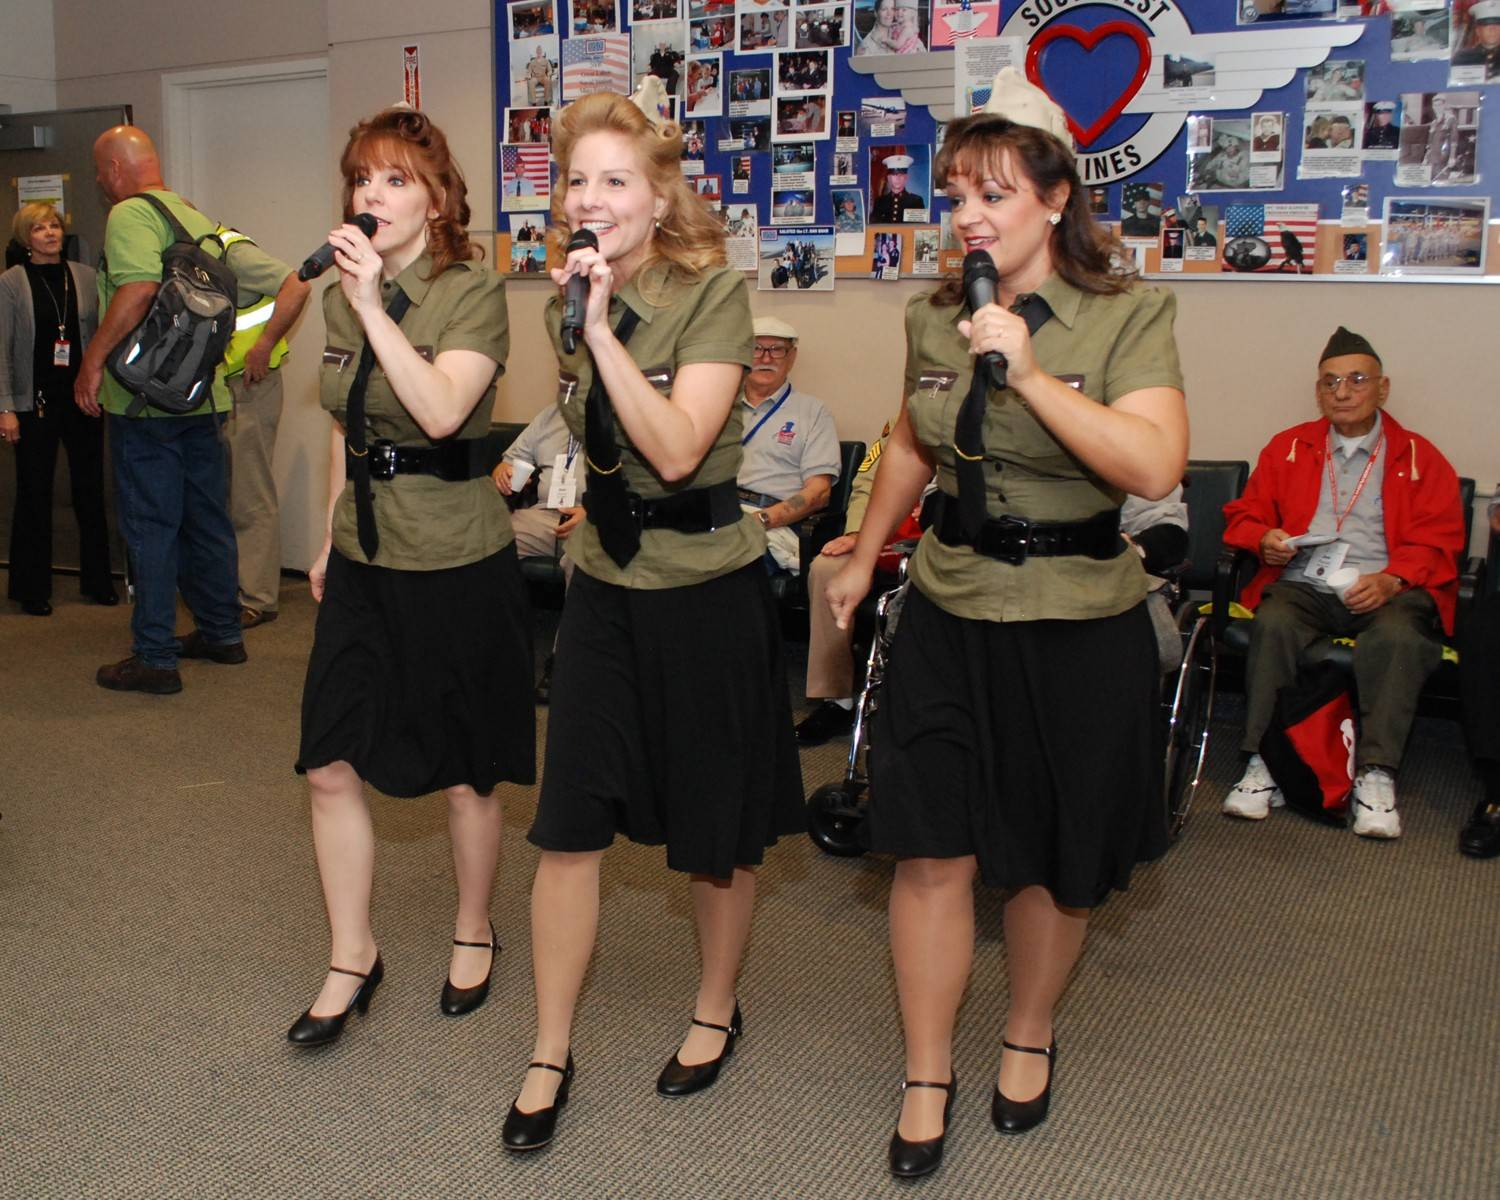 The Legacy Girls, who often sing to send off veterans on Honor Flights, will perform at the DuPage Veterans Foundation's fundraising luncheon.